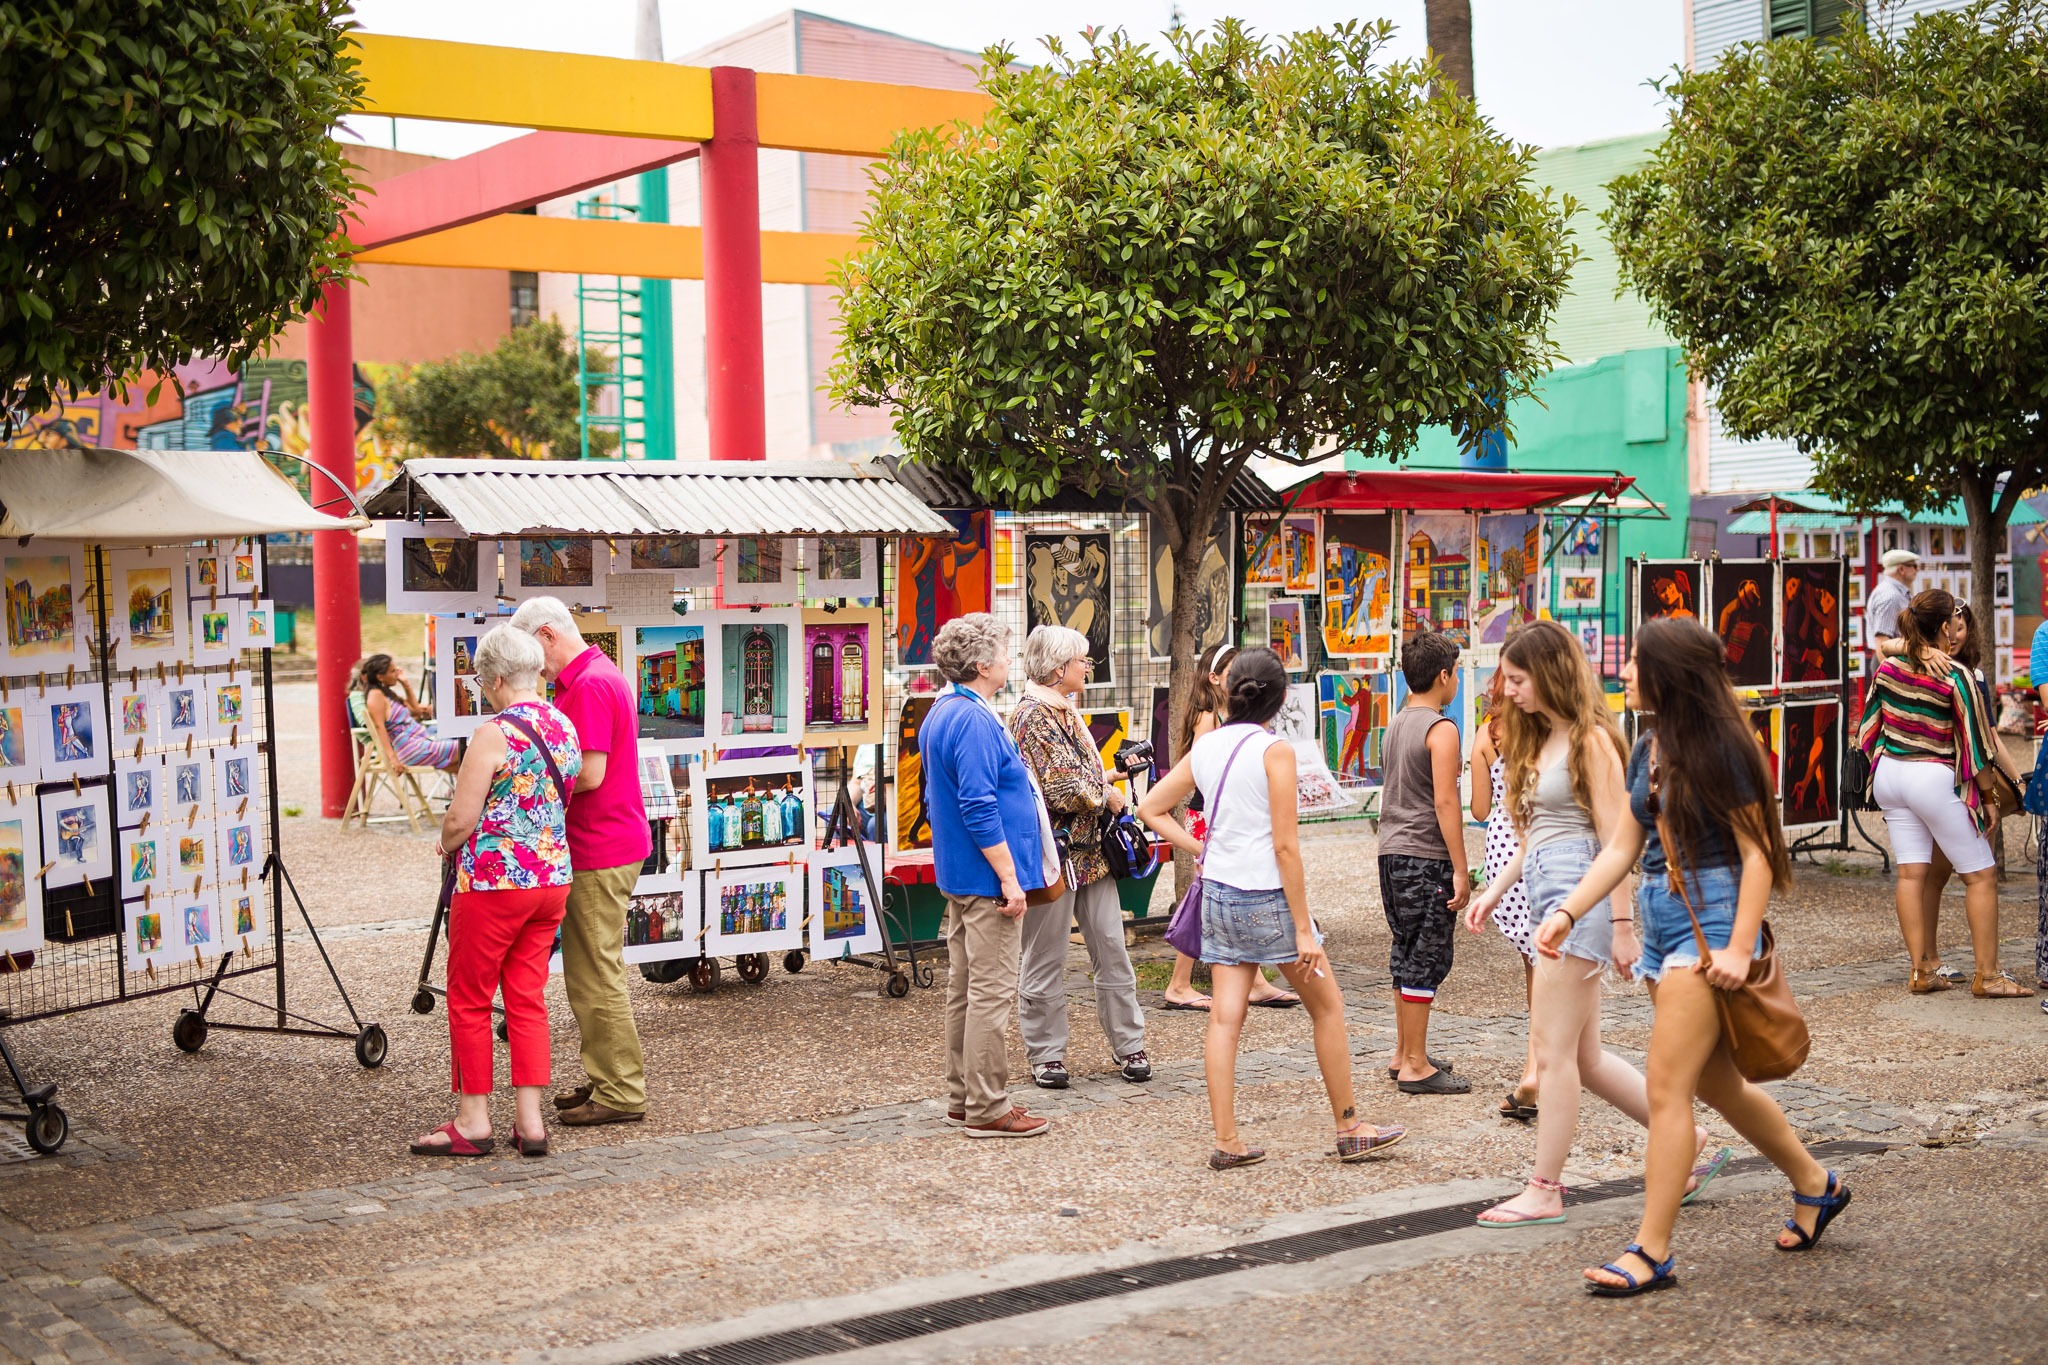 wedding-travellers-argentina-buenos-aires-la-boca-colorful-old-paintings-art